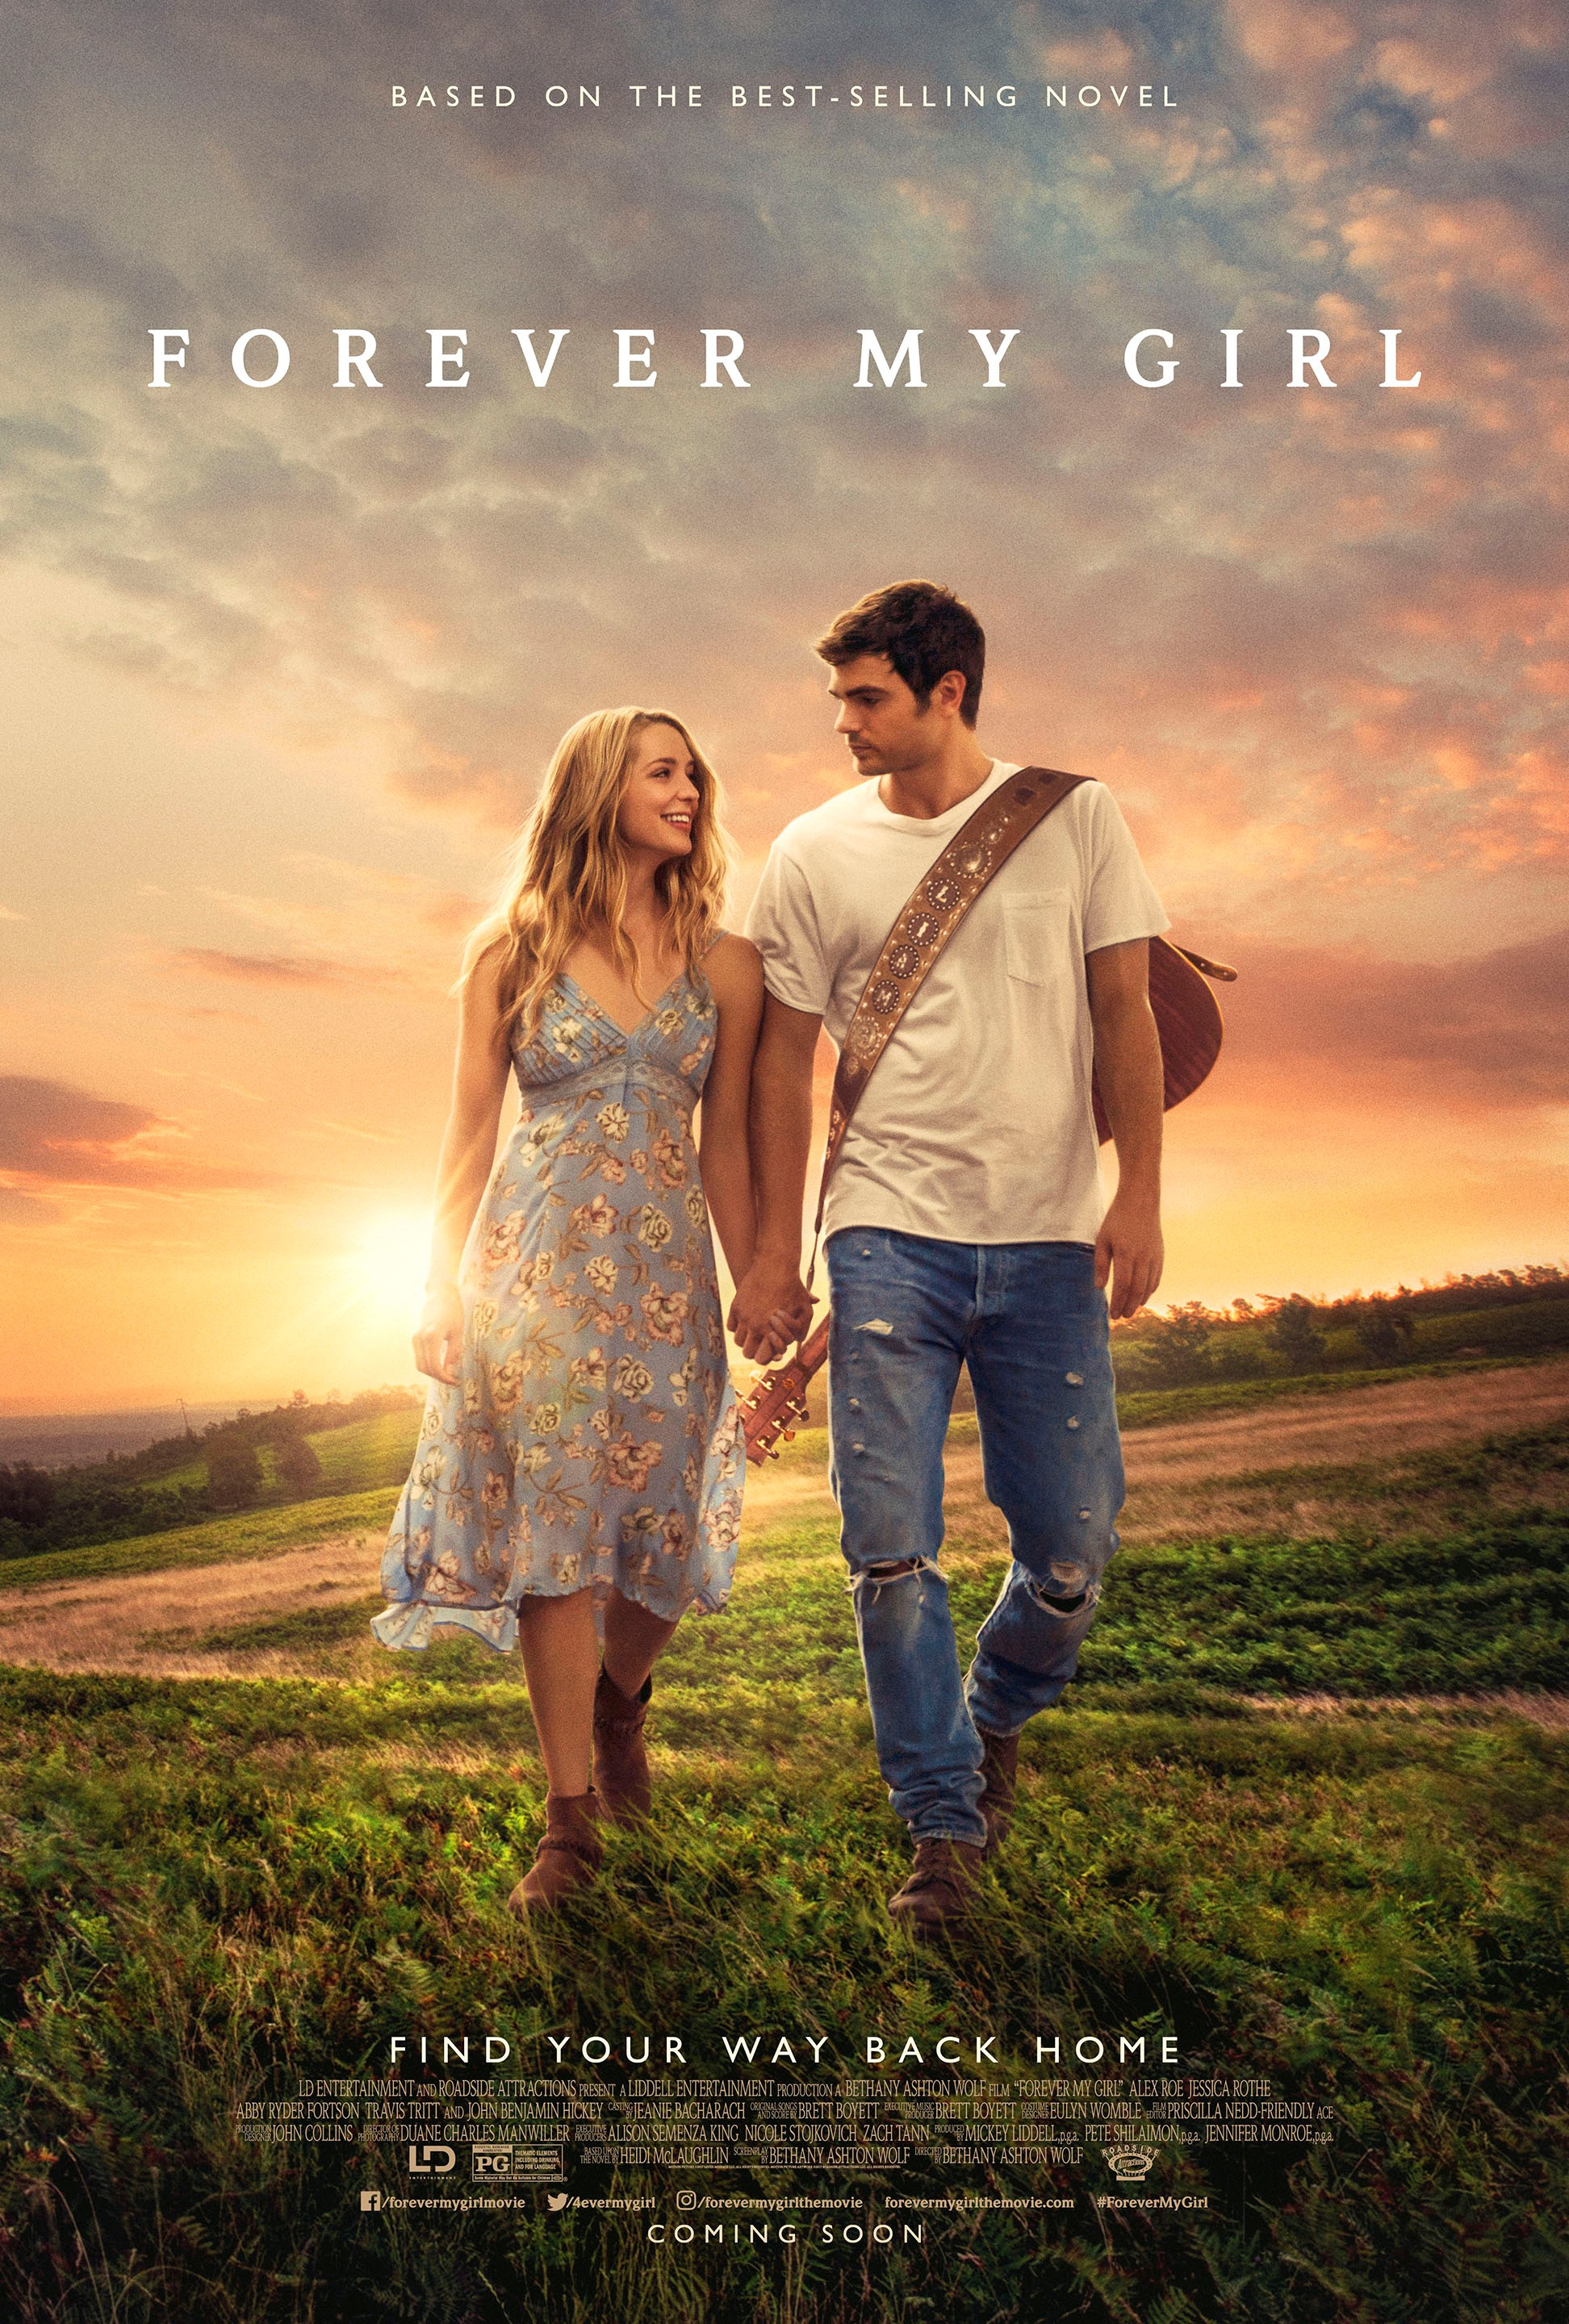 Forever My Girl tells the story of country music super-star Liam Page (Alex Roe) who left his bride, Josie (Jessica Rothe), at the altar choosing fame and fortune instead. In theaters January 19th!